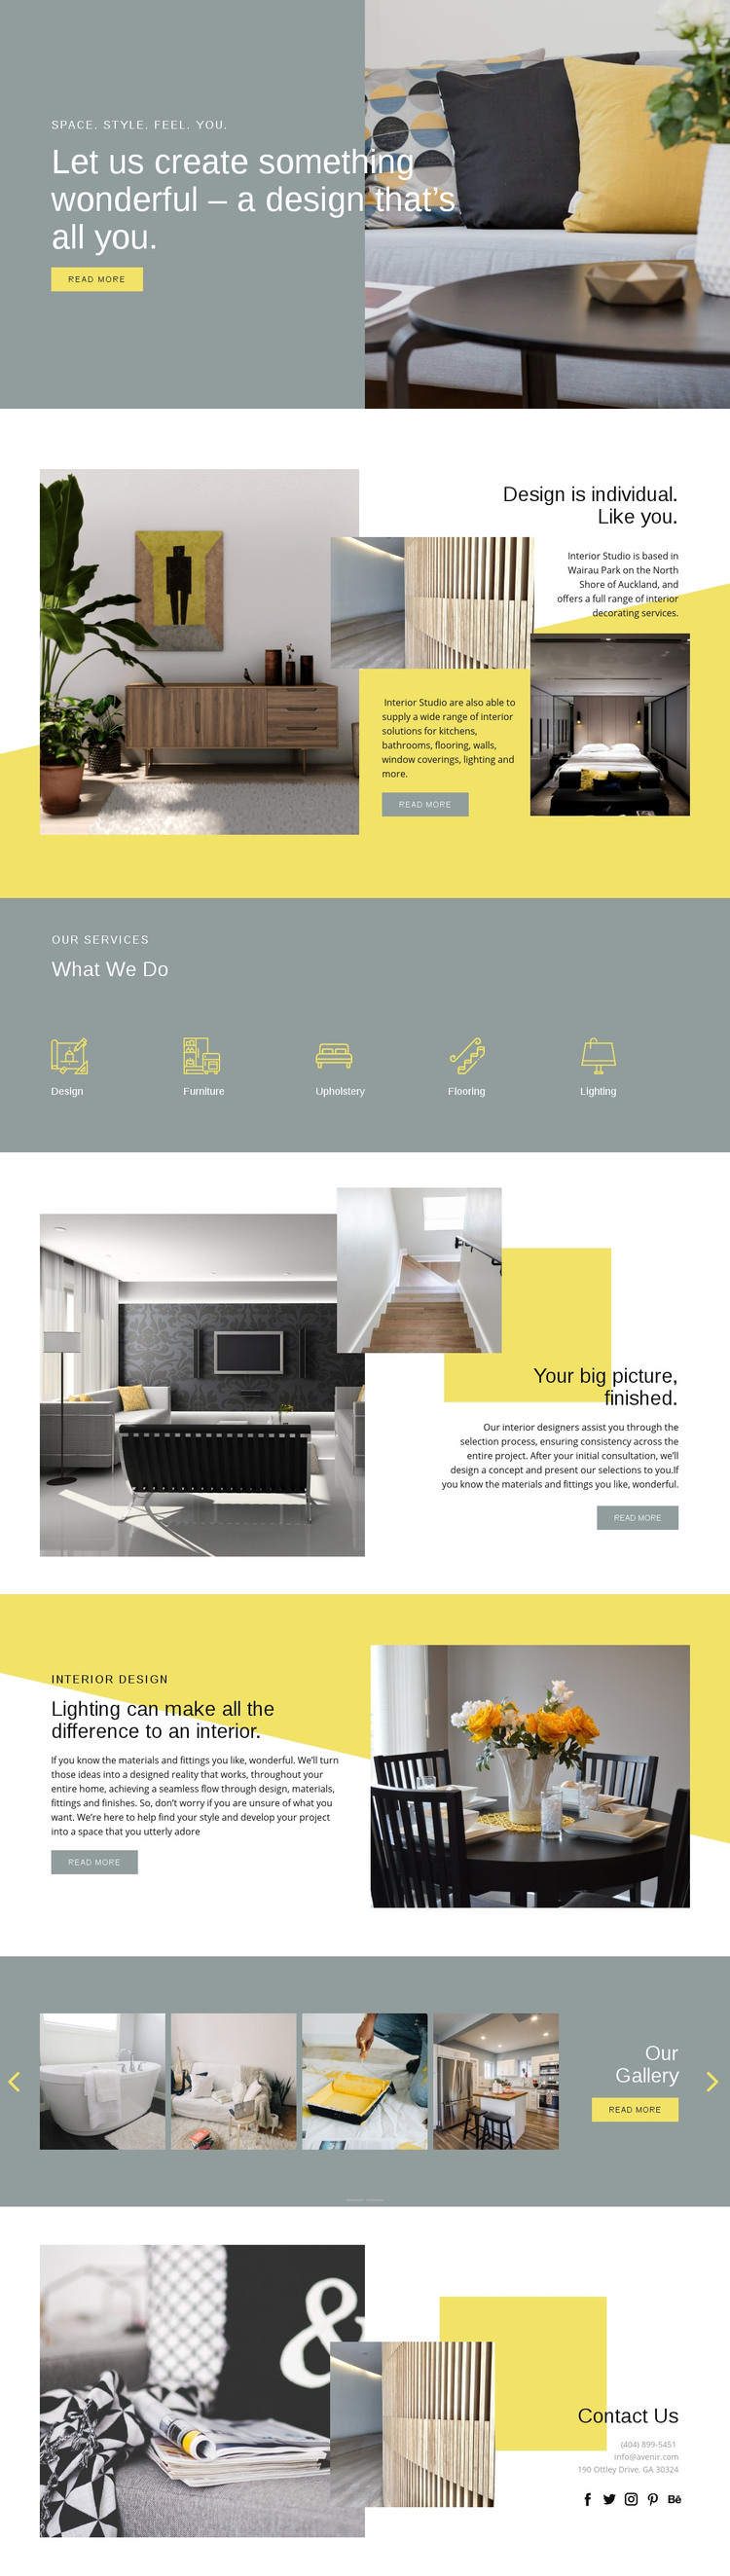 Design is your everything Homepage Design